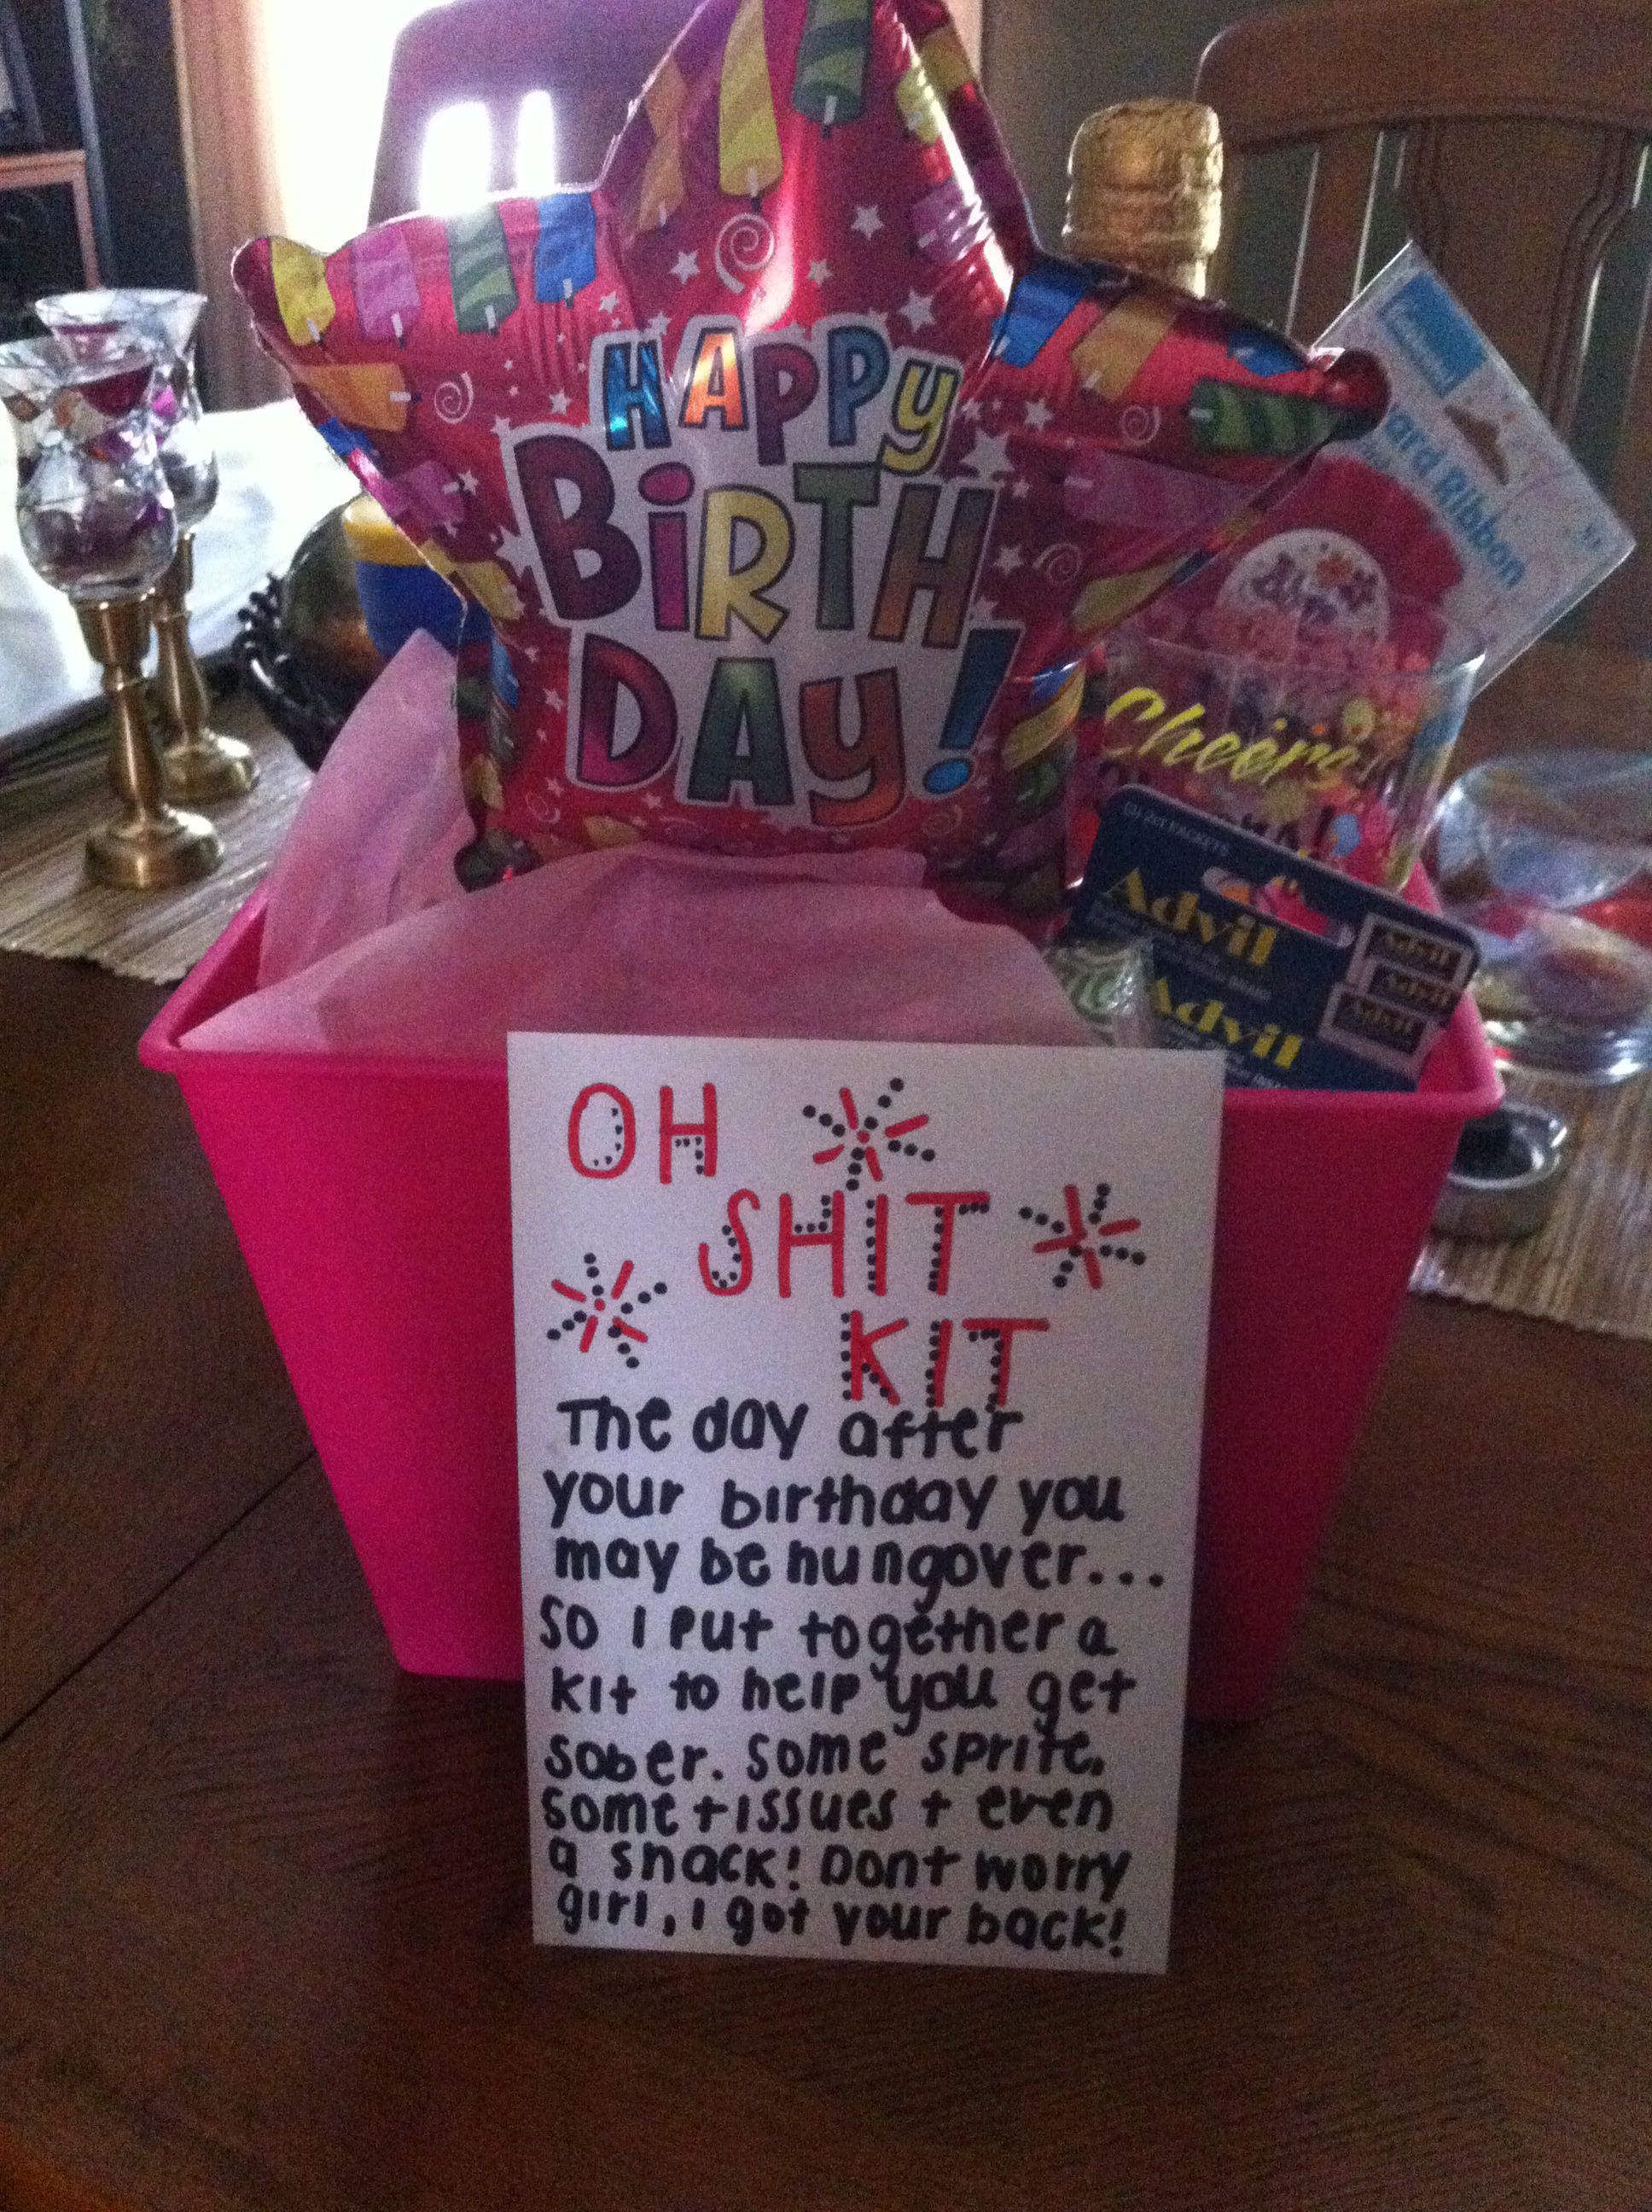 Oh Shit Hangover Kit For 21st Birthday Funny Birthday Gifts Birthday Care Packages 21st Birthday Gifts